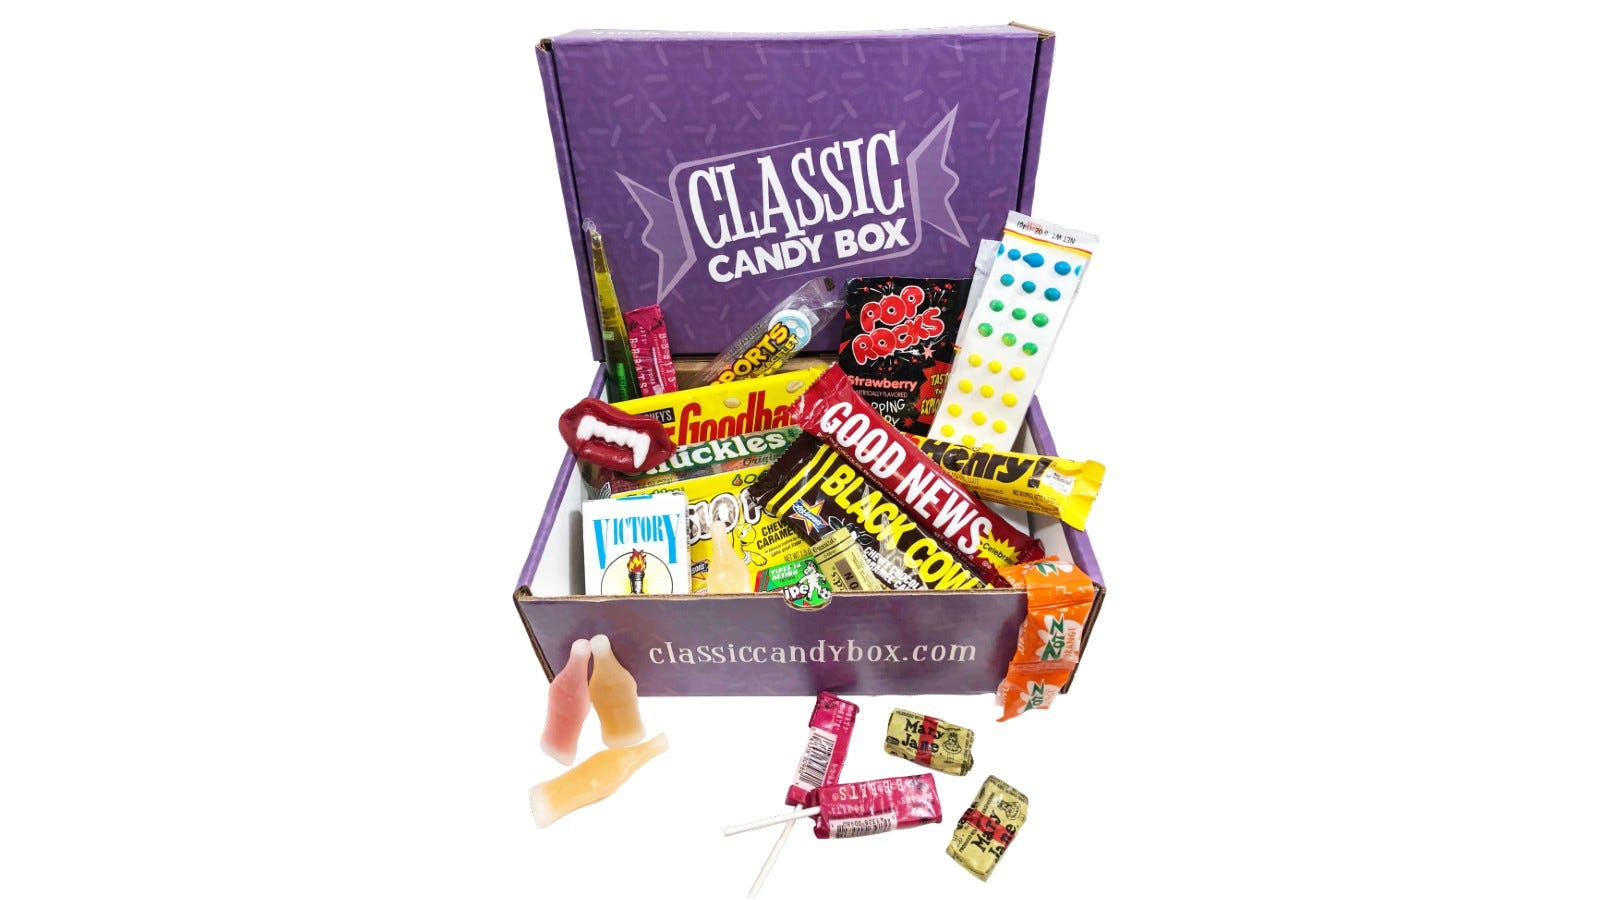 The contents of a Classic Candy Box.